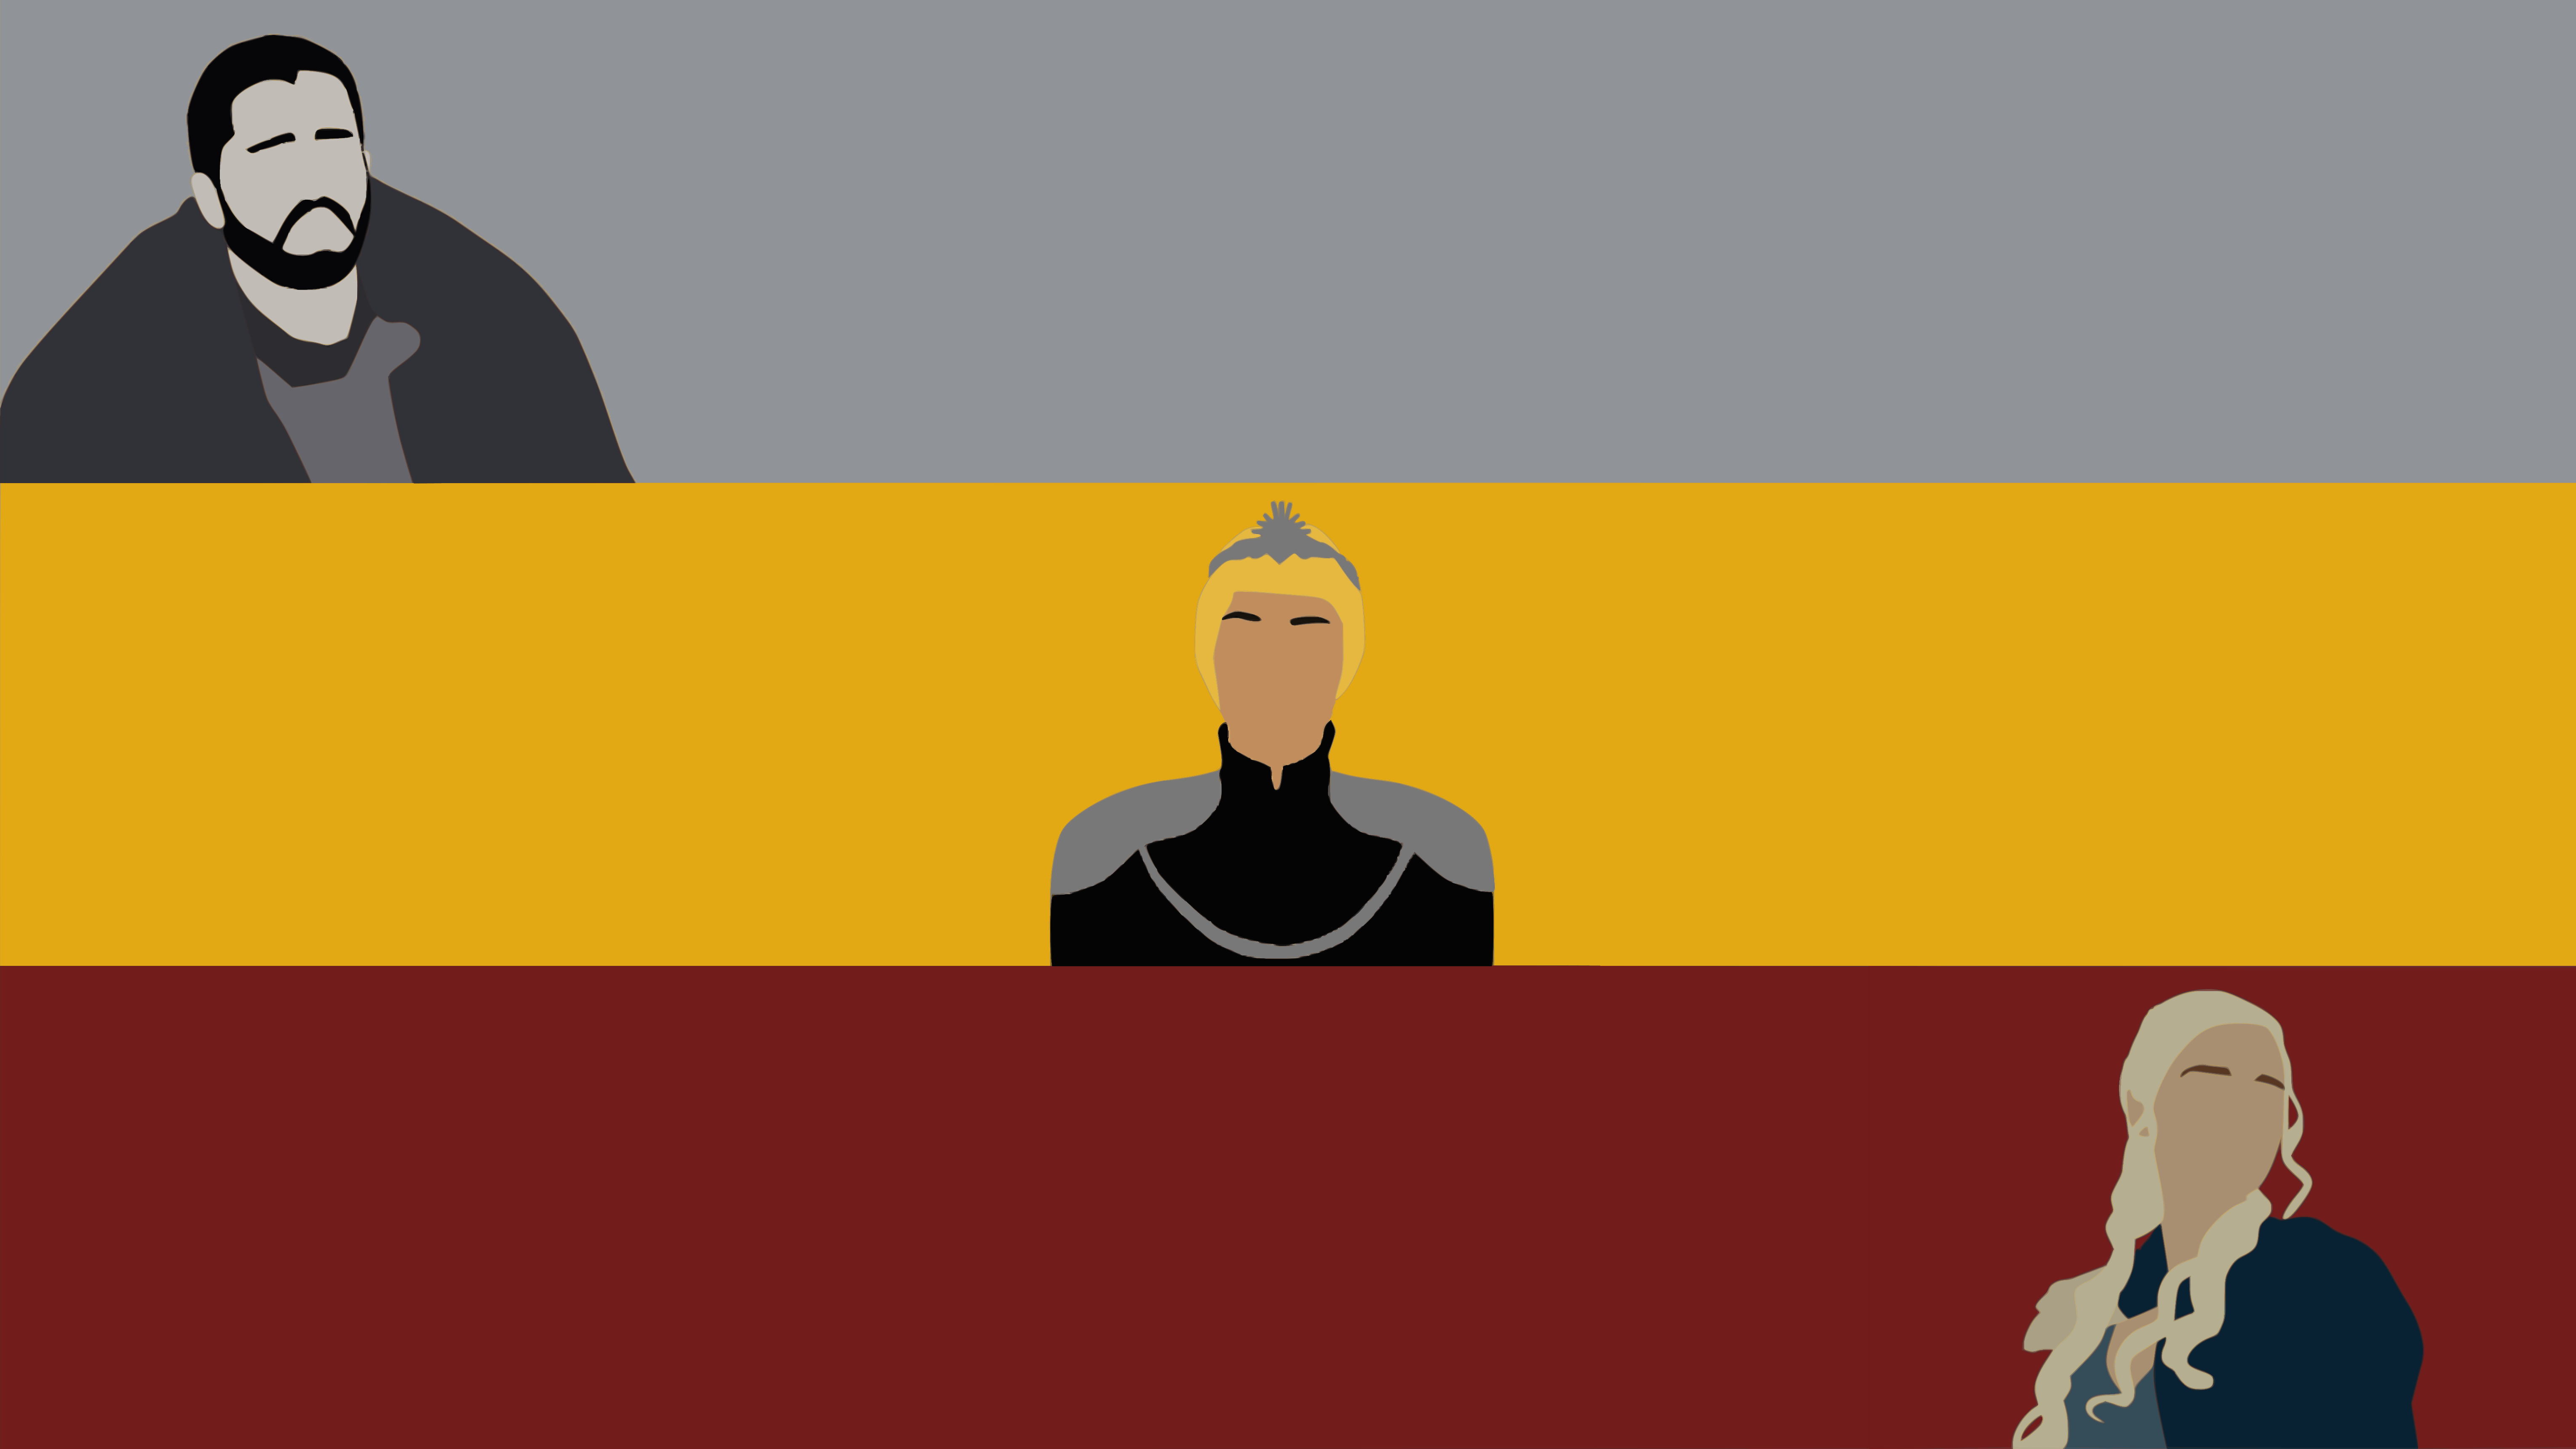 A Game Of Thrones Minimalist Wallpaper By Damionmauville On